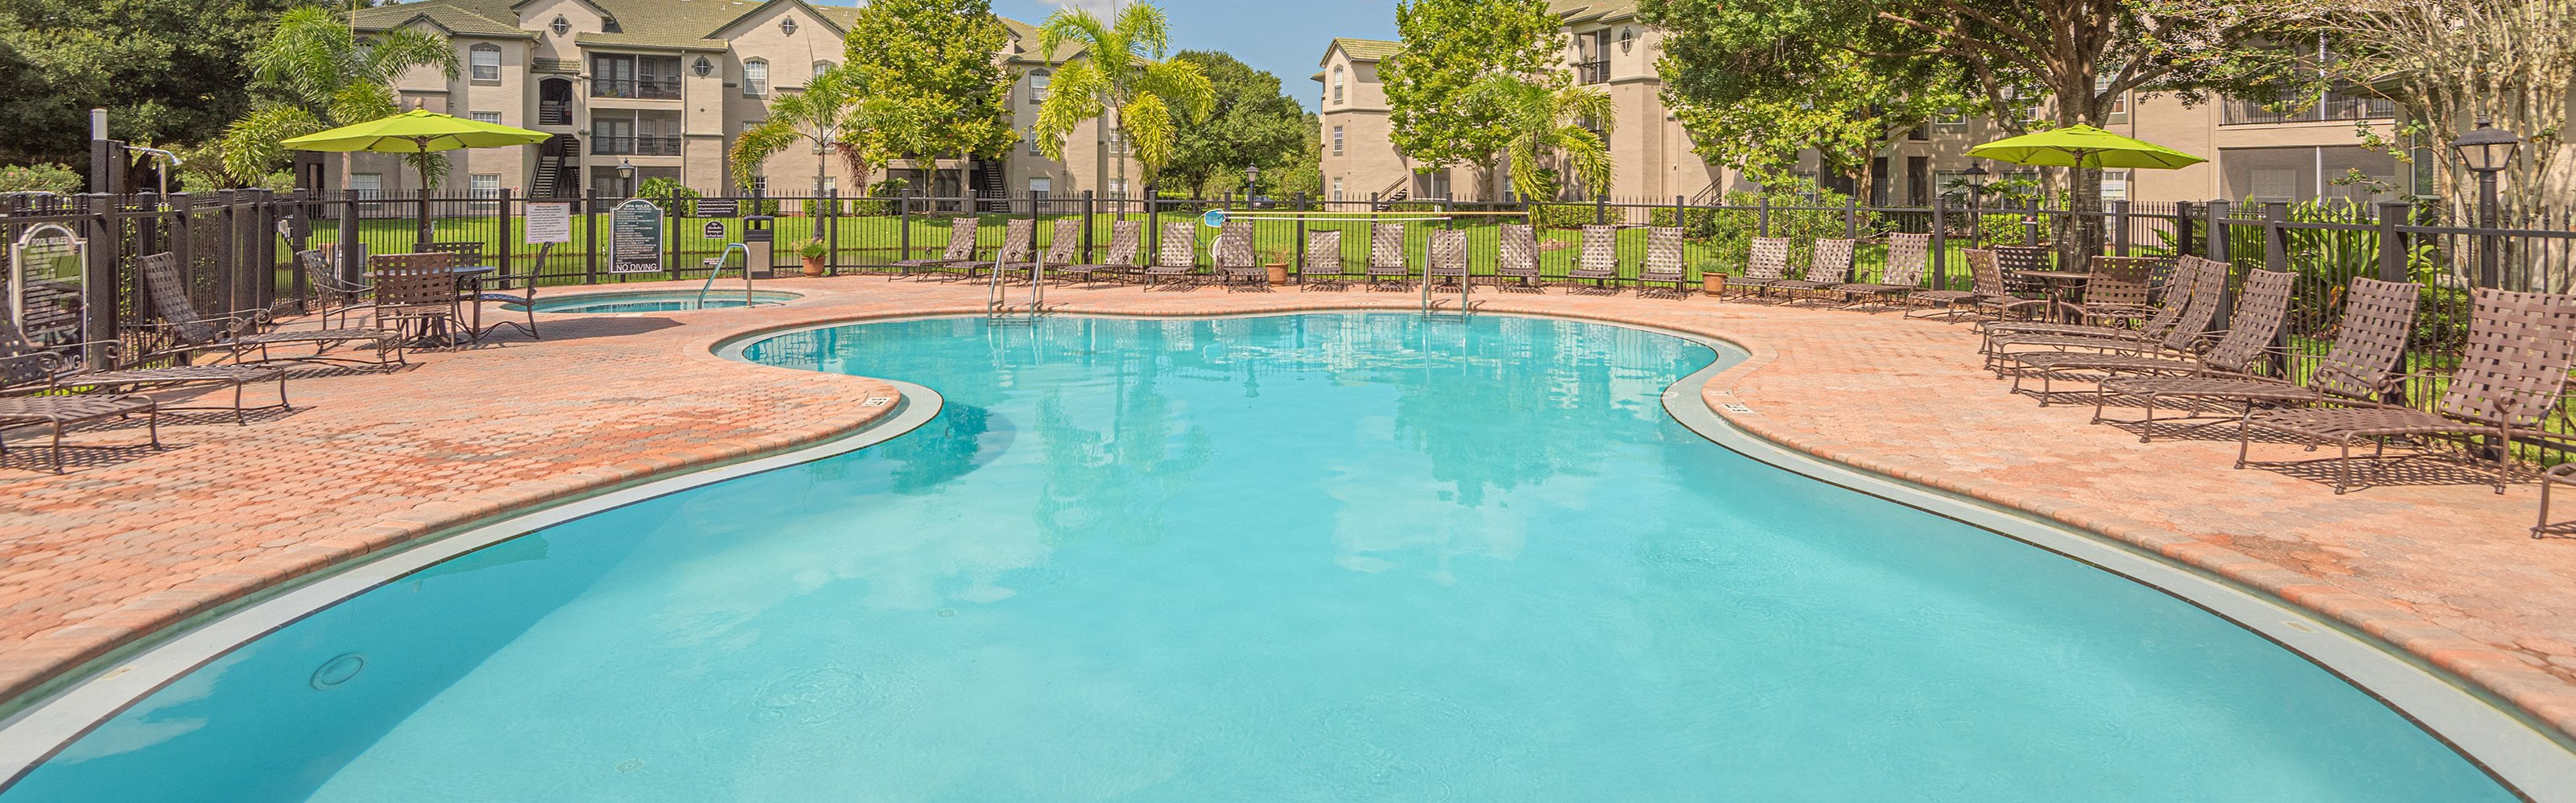 Versant Place Apartments pool area